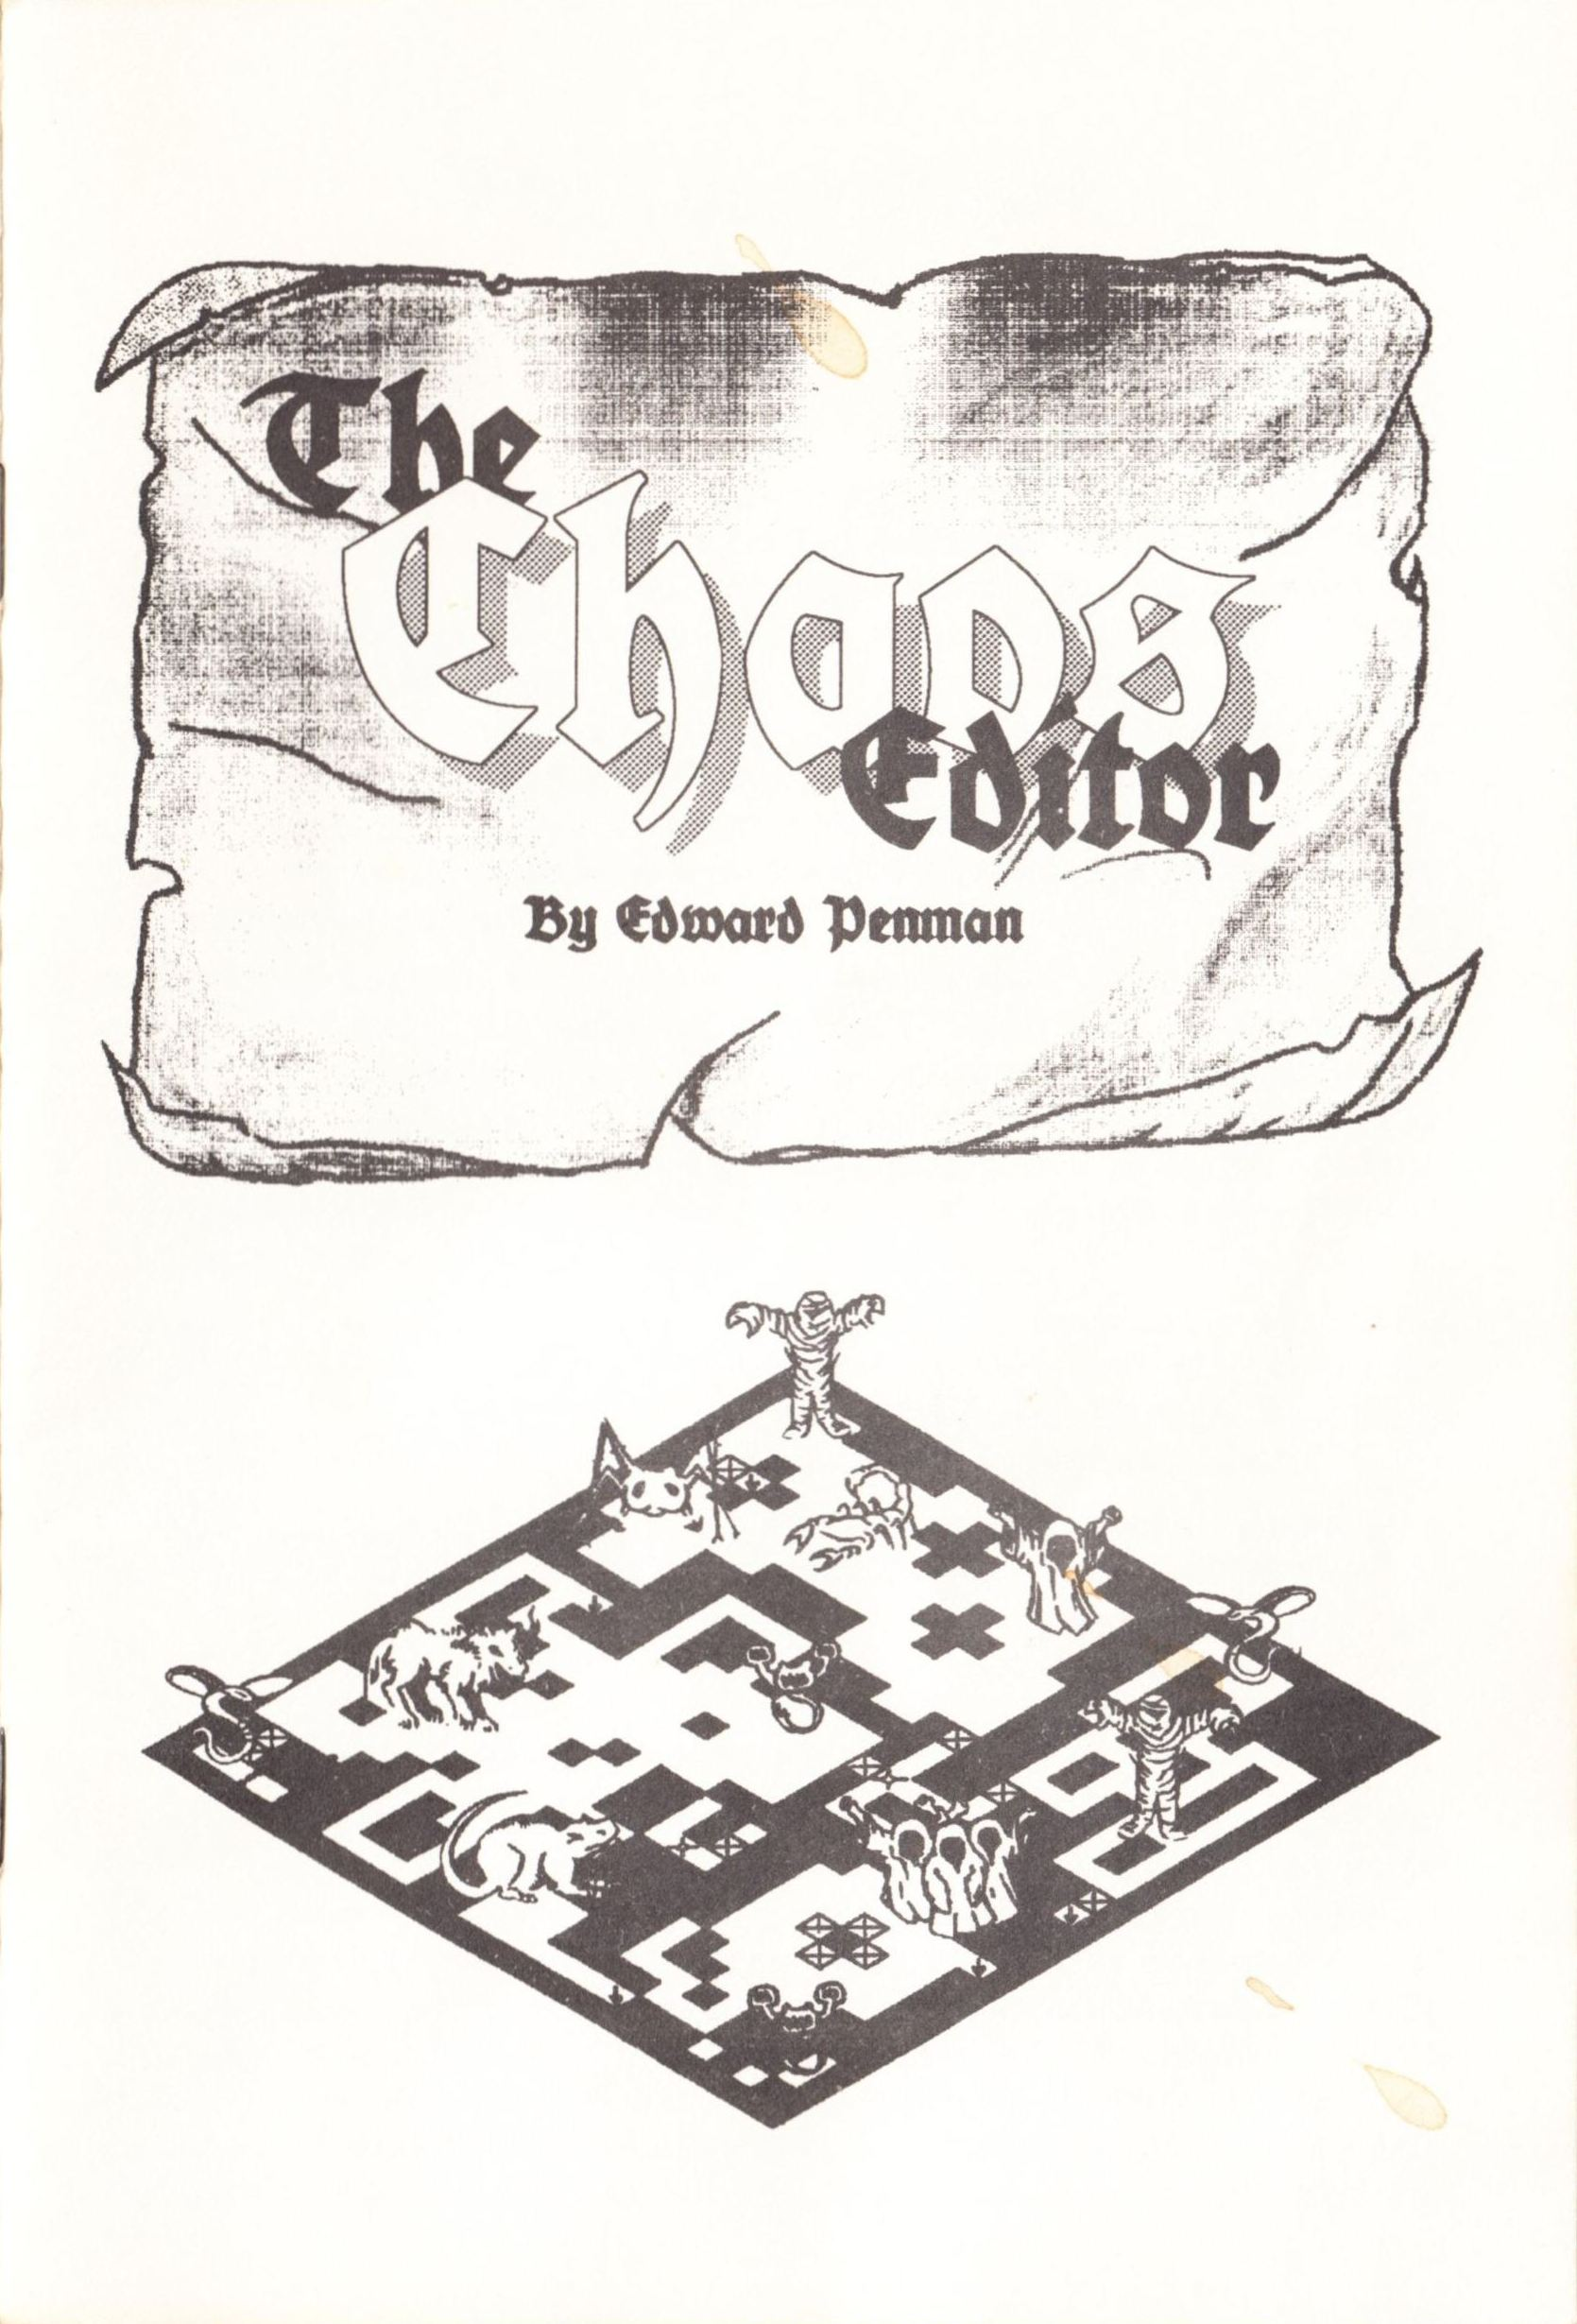 Tool - The Chaos Editor - UK - Atari ST - Manual - Page 001 - Scan